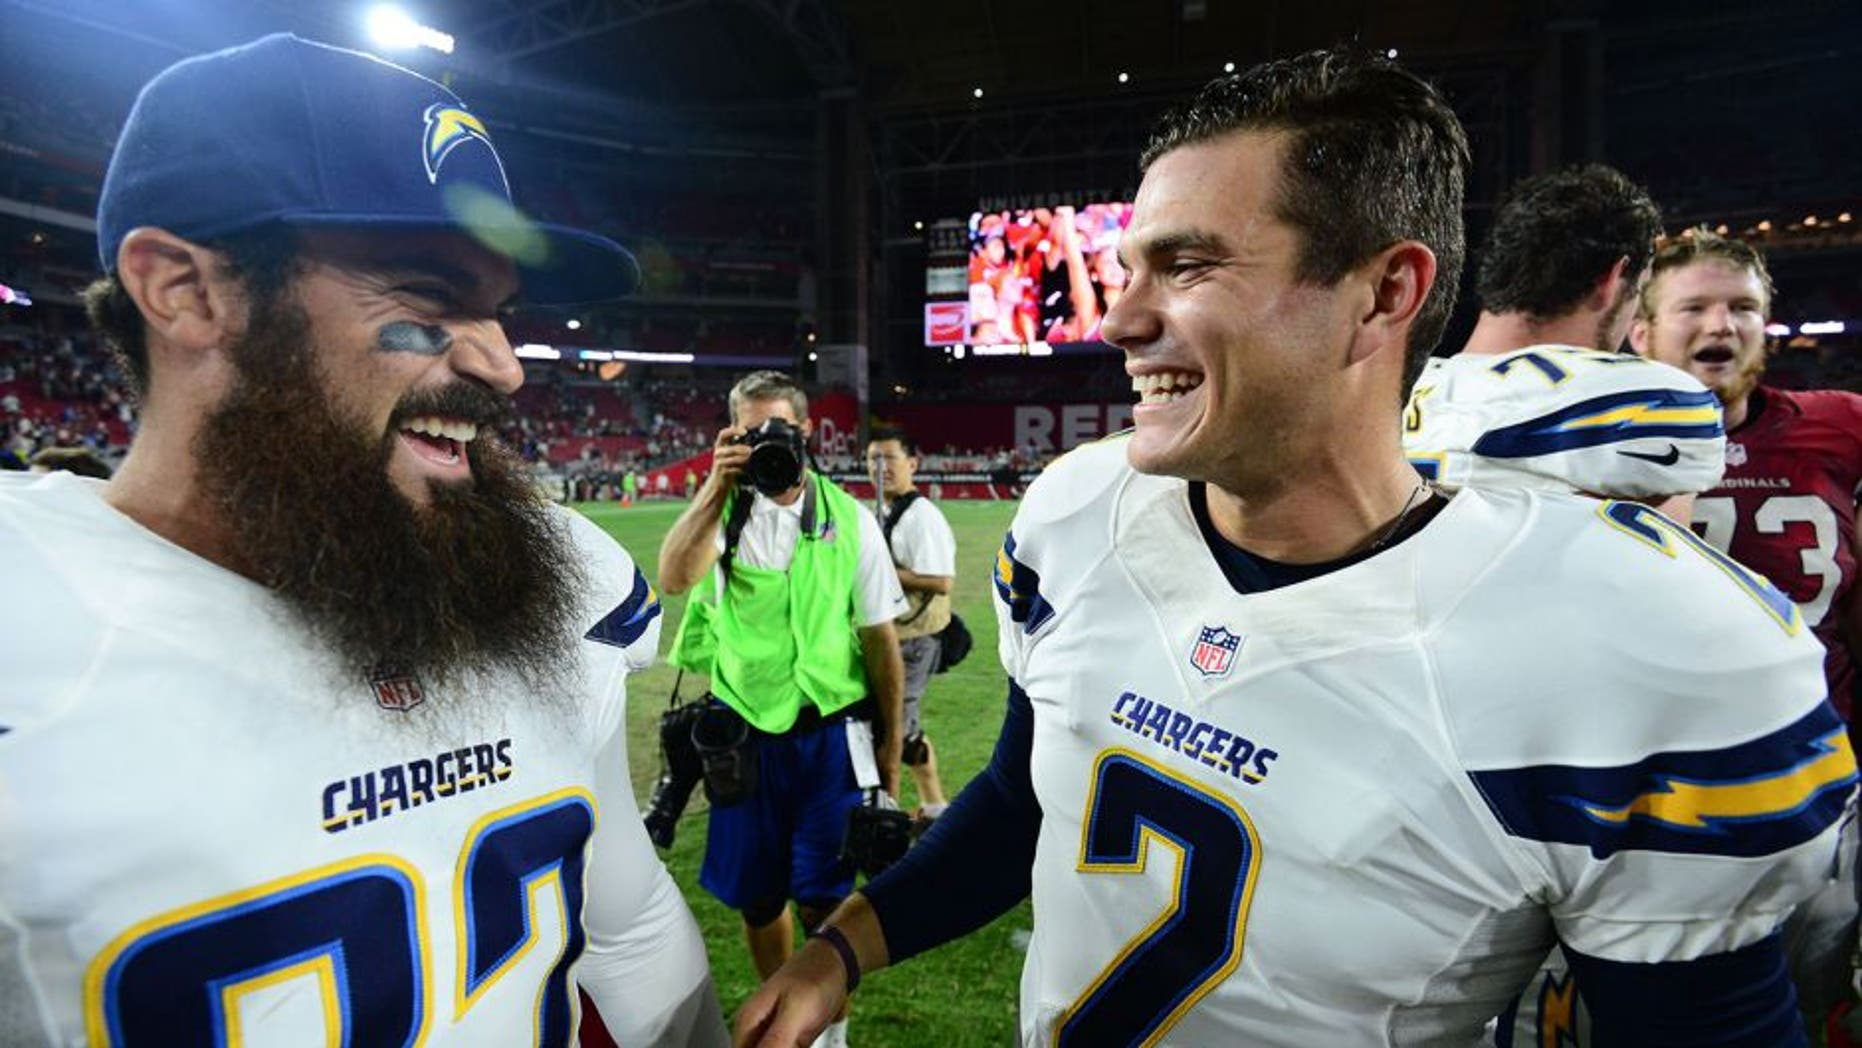 Aug 22, 2015; Glendale, AZ, USA; San Diego Chargers kicker Josh Lambo (2) celebrates with teammates after kicking a game winning field goal against the Arizona Cardinals during the second half at University of Phoenix Stadium. The Chargers won 22-19. Mandatory Credit: Joe Camporeale-USA TODAY Sports